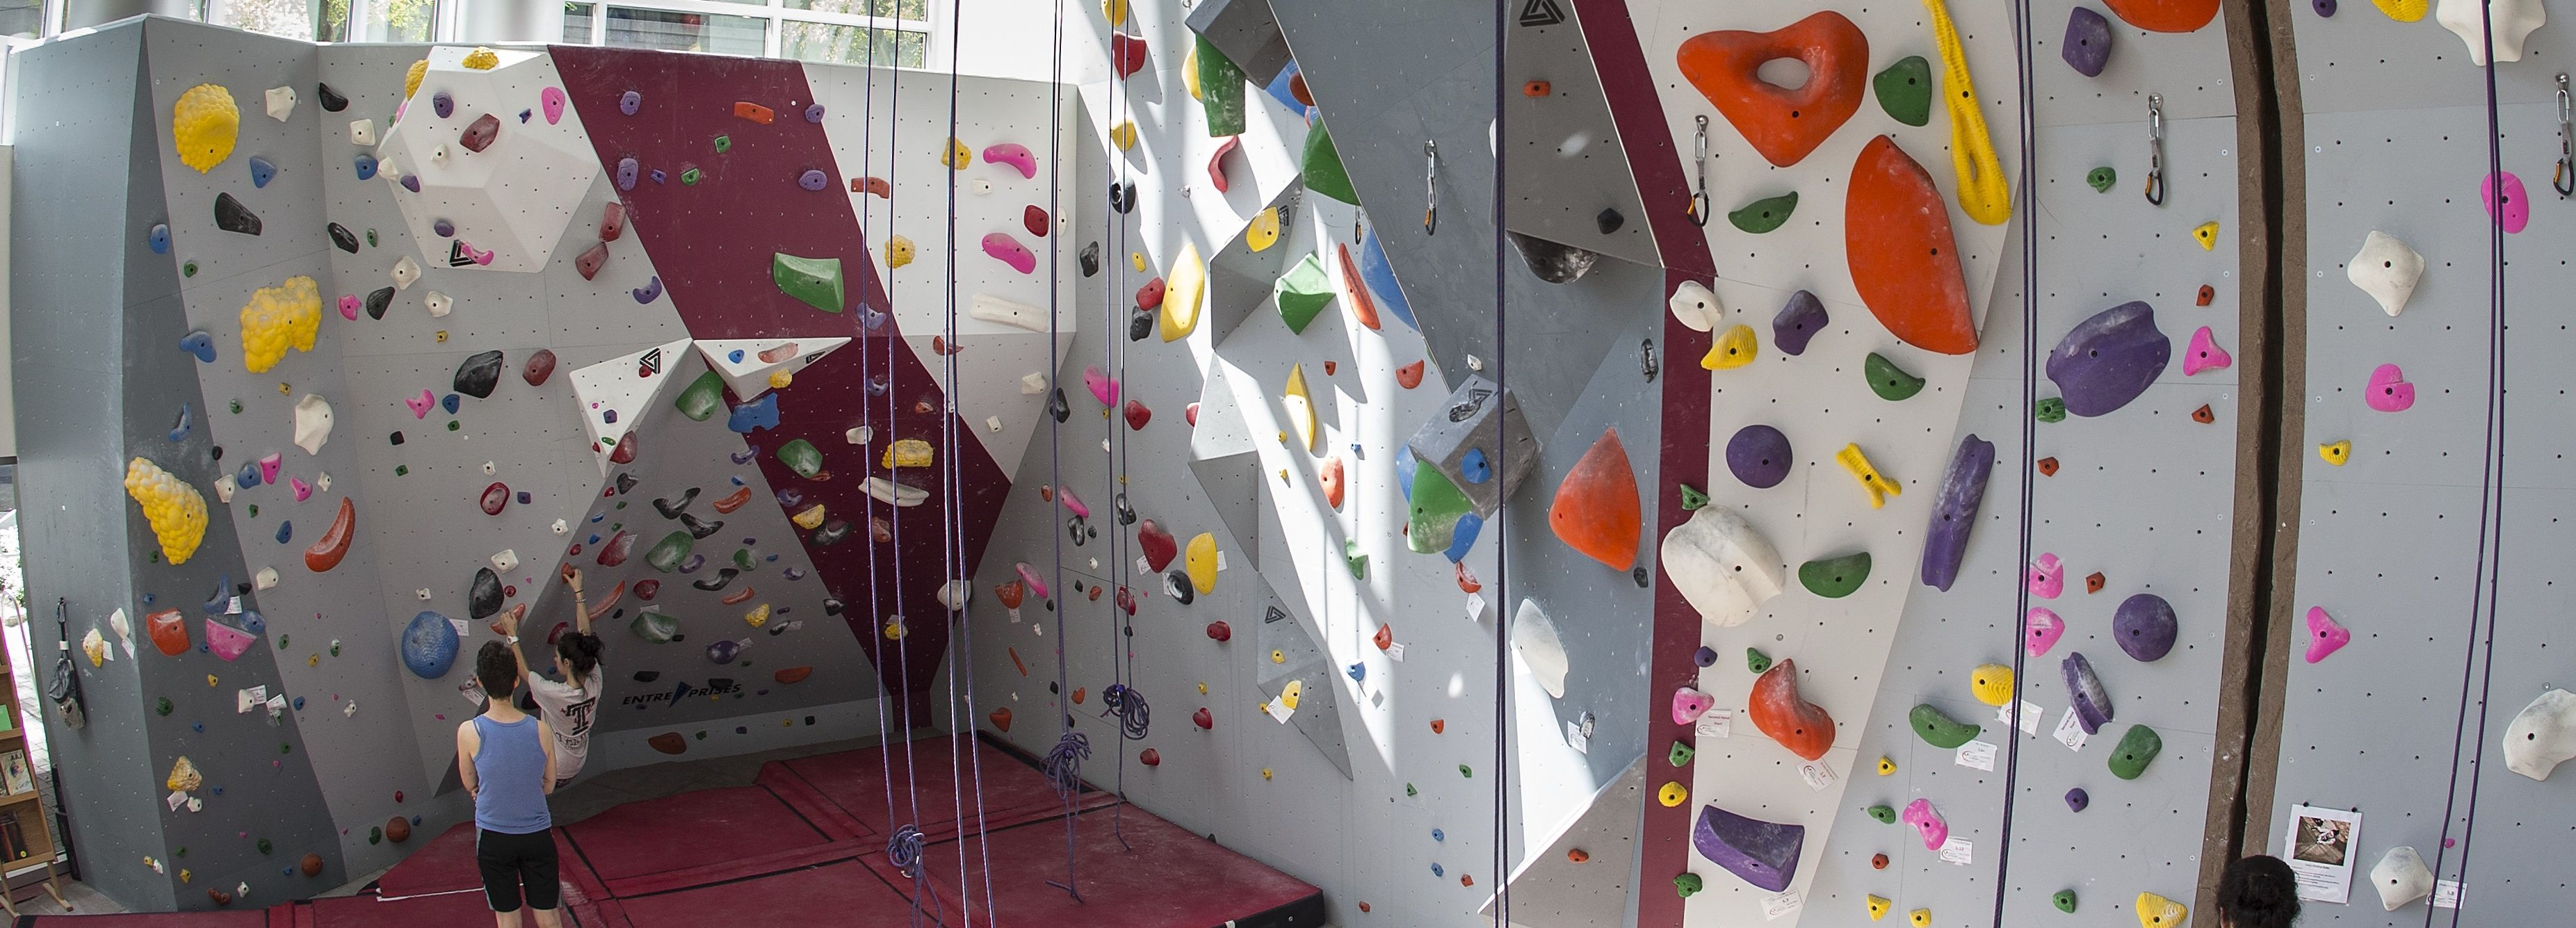 A person climbing on the wall with a spotter.